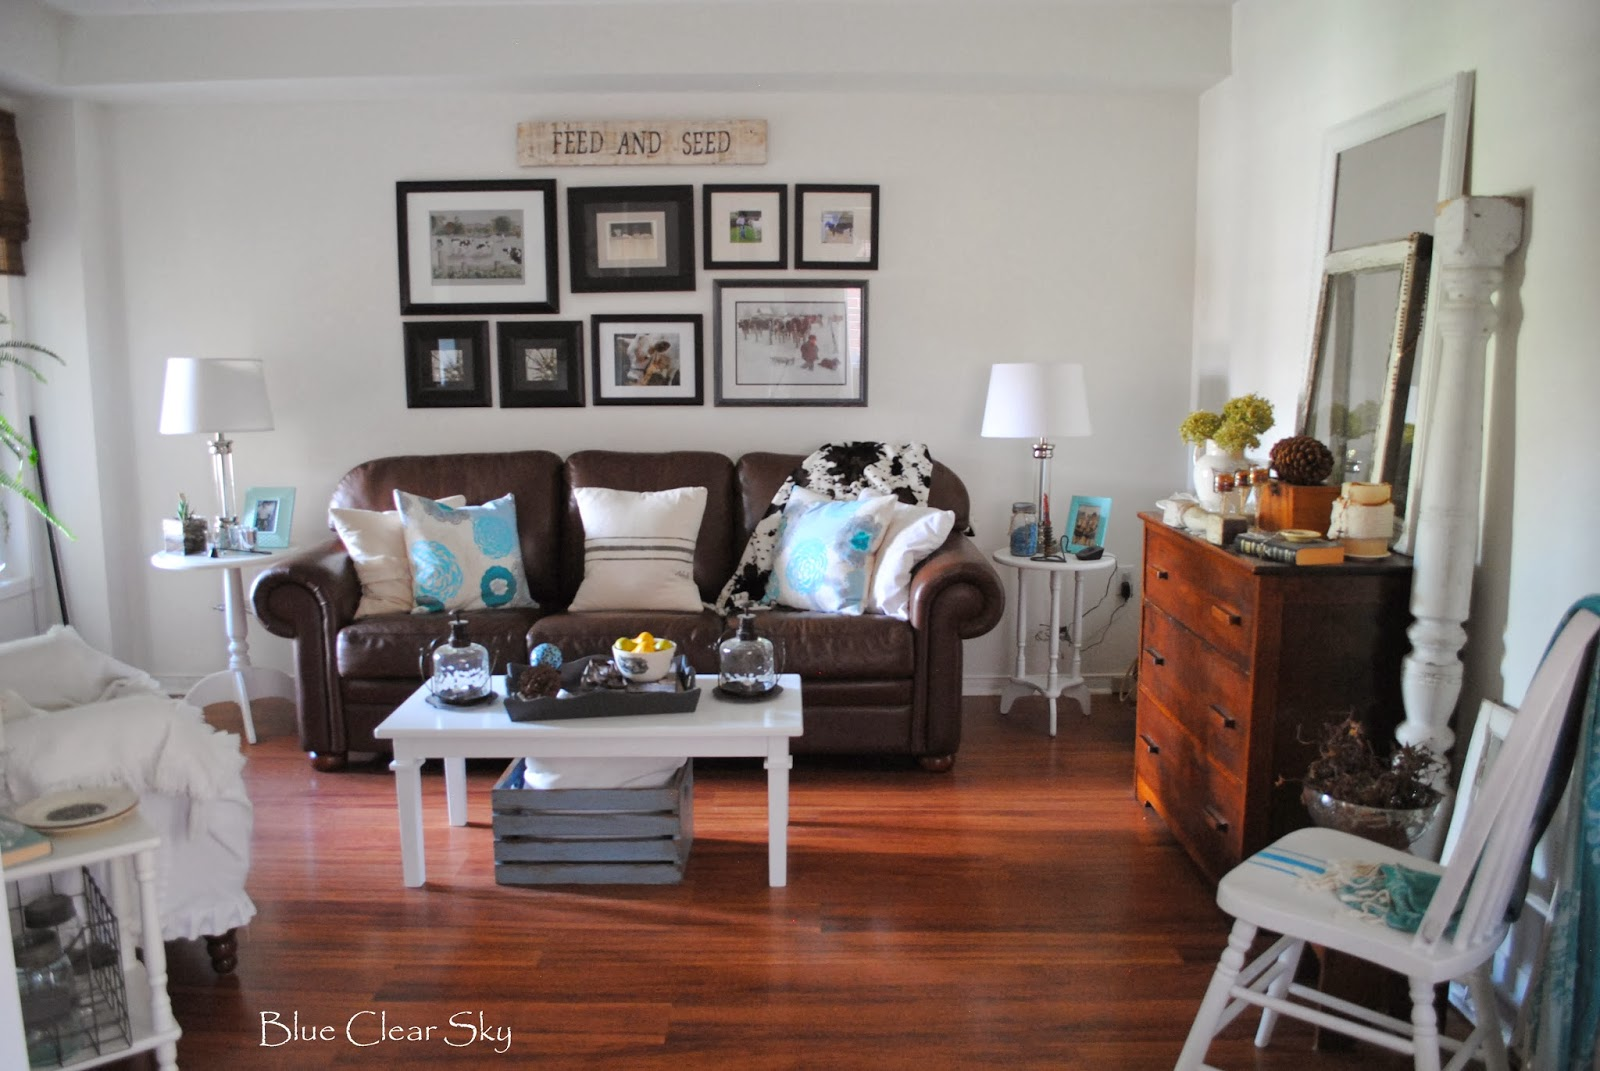 Blue Clear Sky: Architectural Salvage In Our Living Room